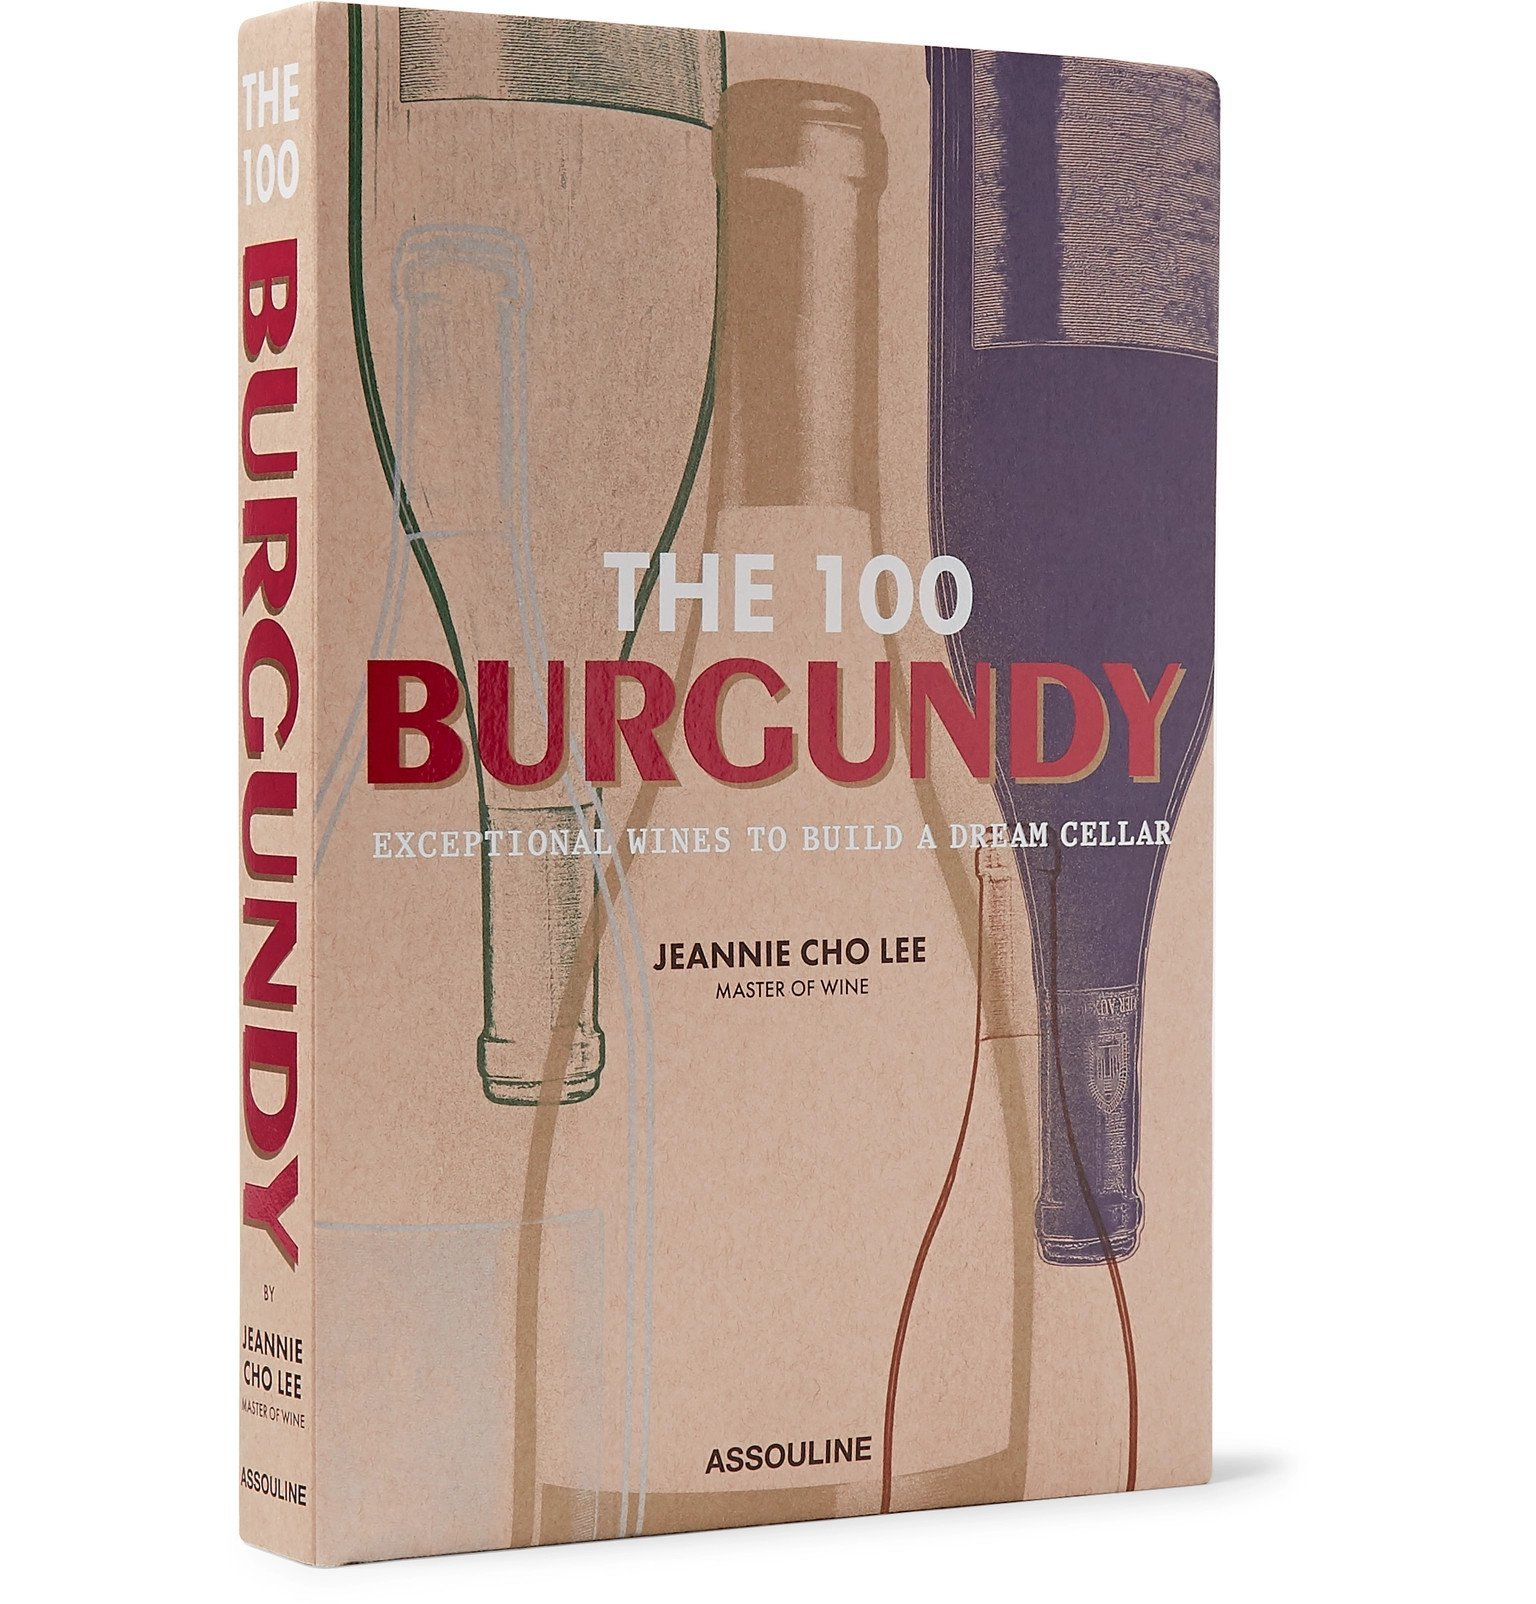 Photo: Assouline - The 100: Burgundy - Exceptional Wines to Build a Dream Cellar Hardcover Book - Neutrals